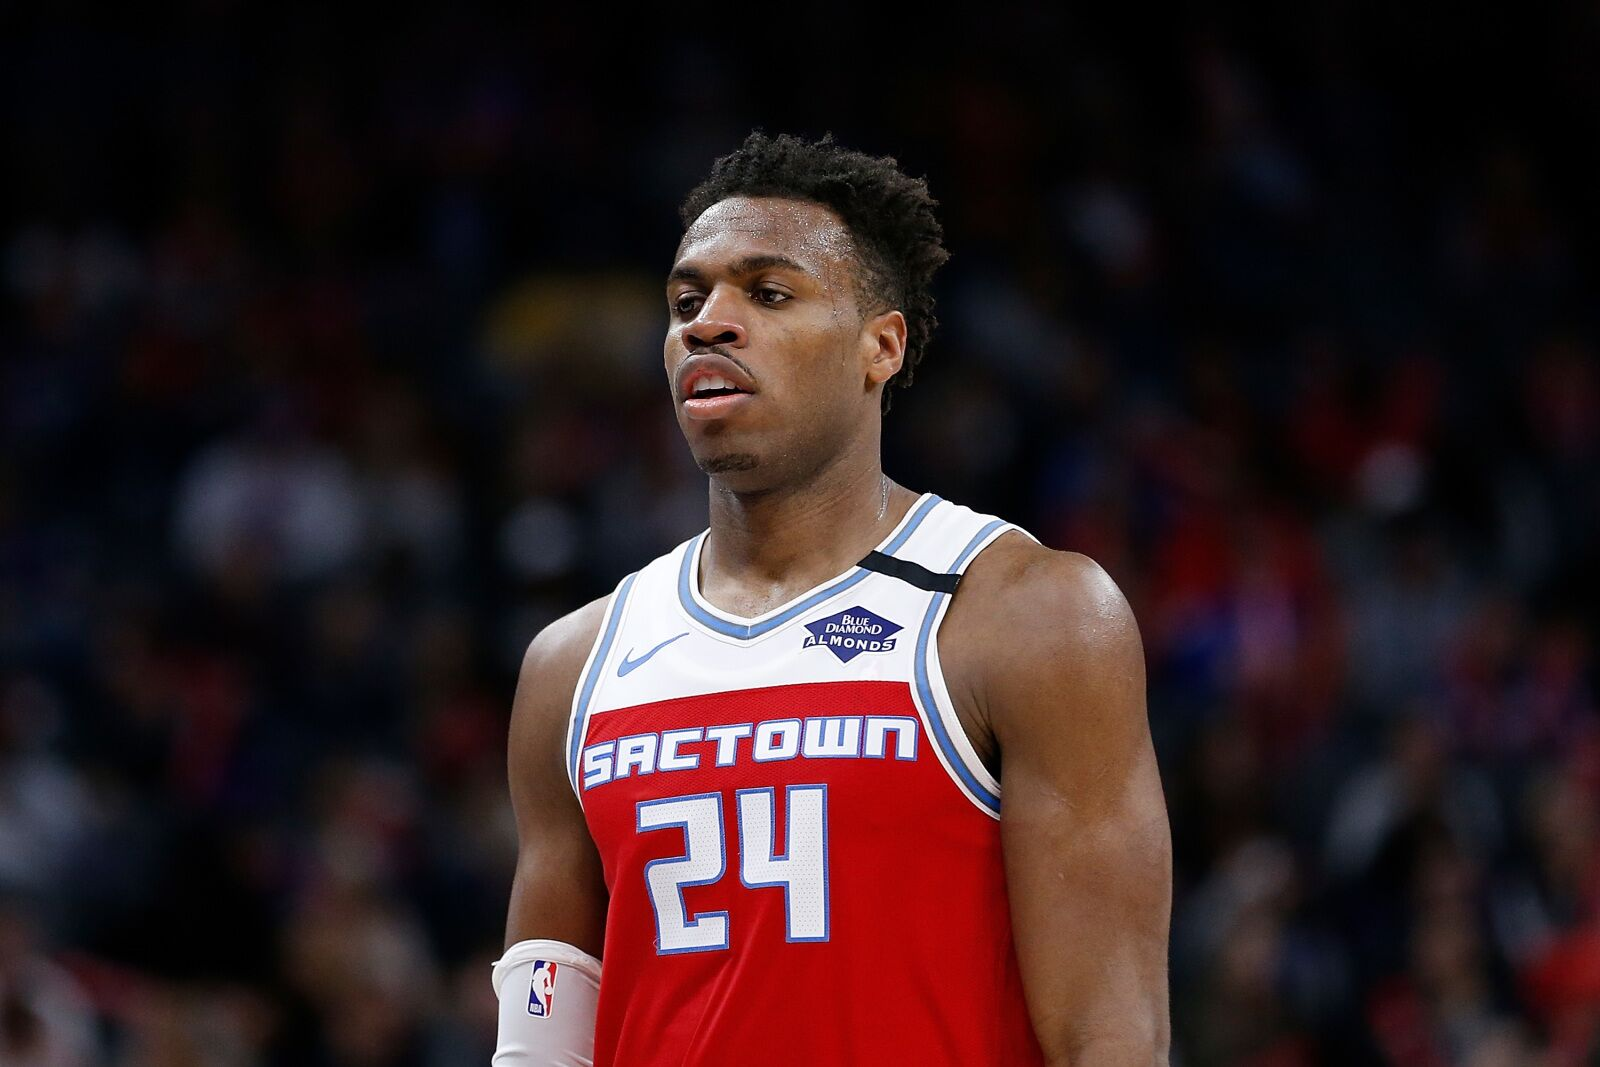 Chicago Bulls: 4 offseason trades with the Kings for Buddy Hield